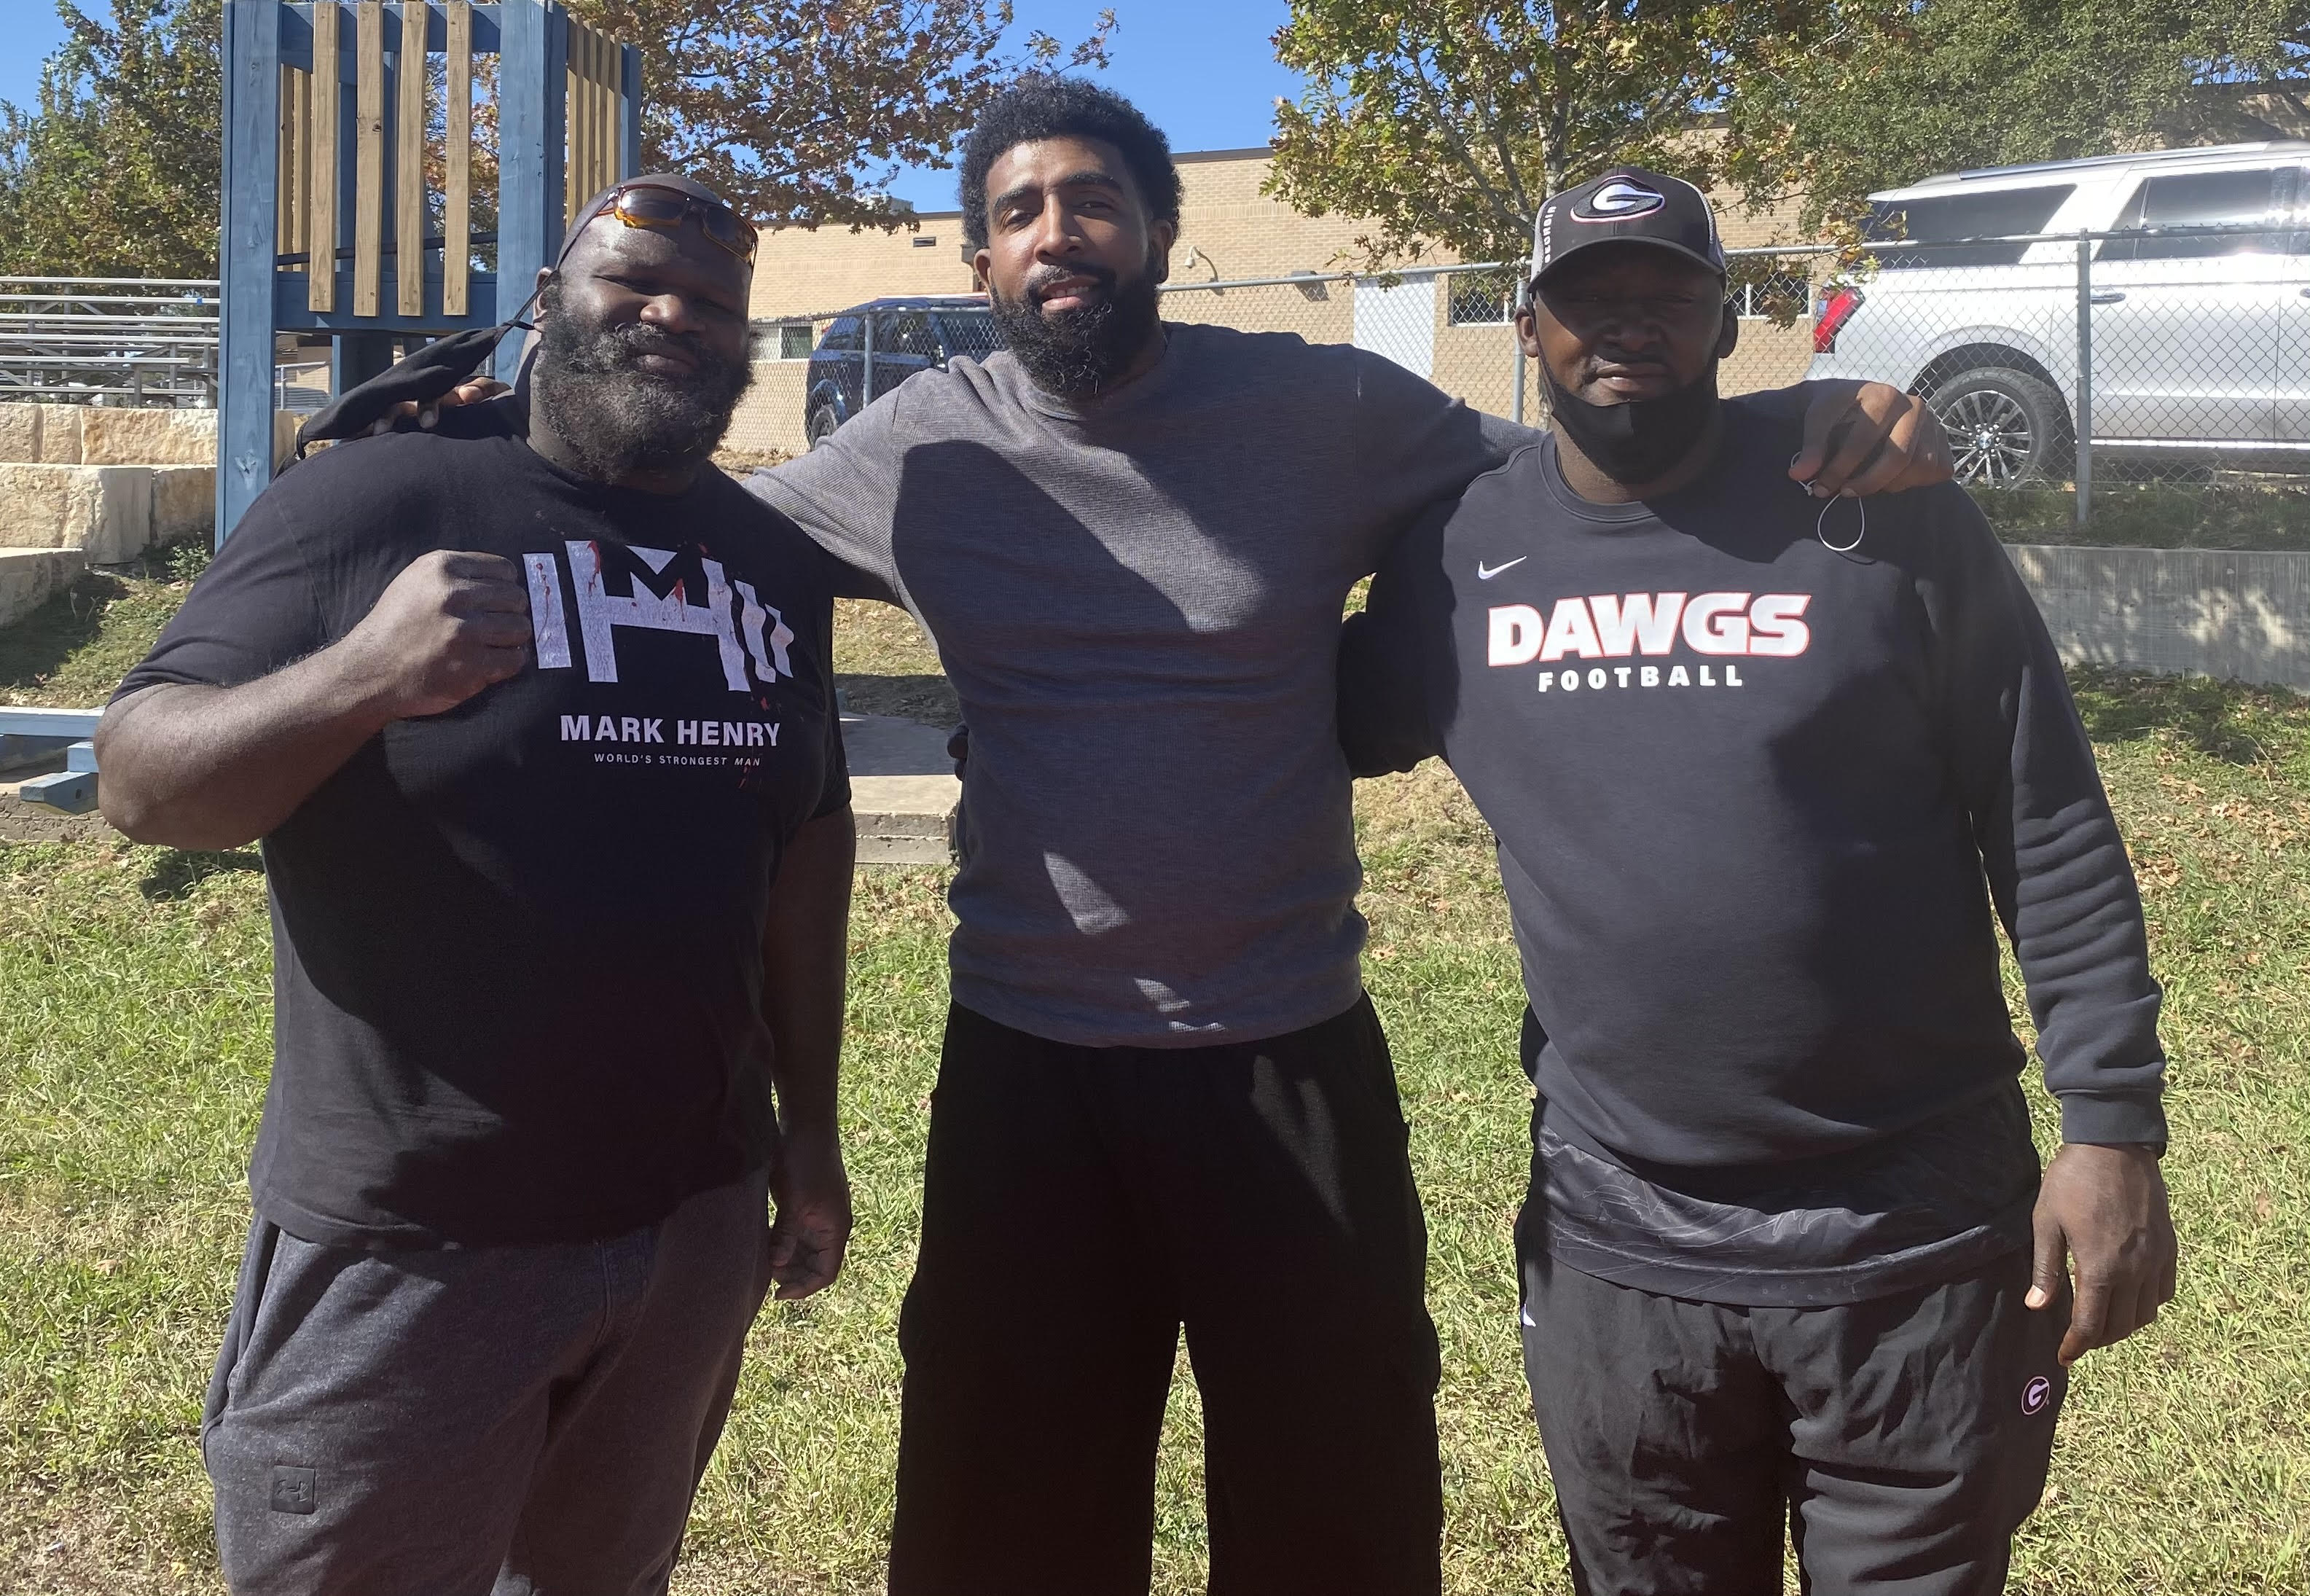 Derrick with Mark Henry and Quincy L. Carter